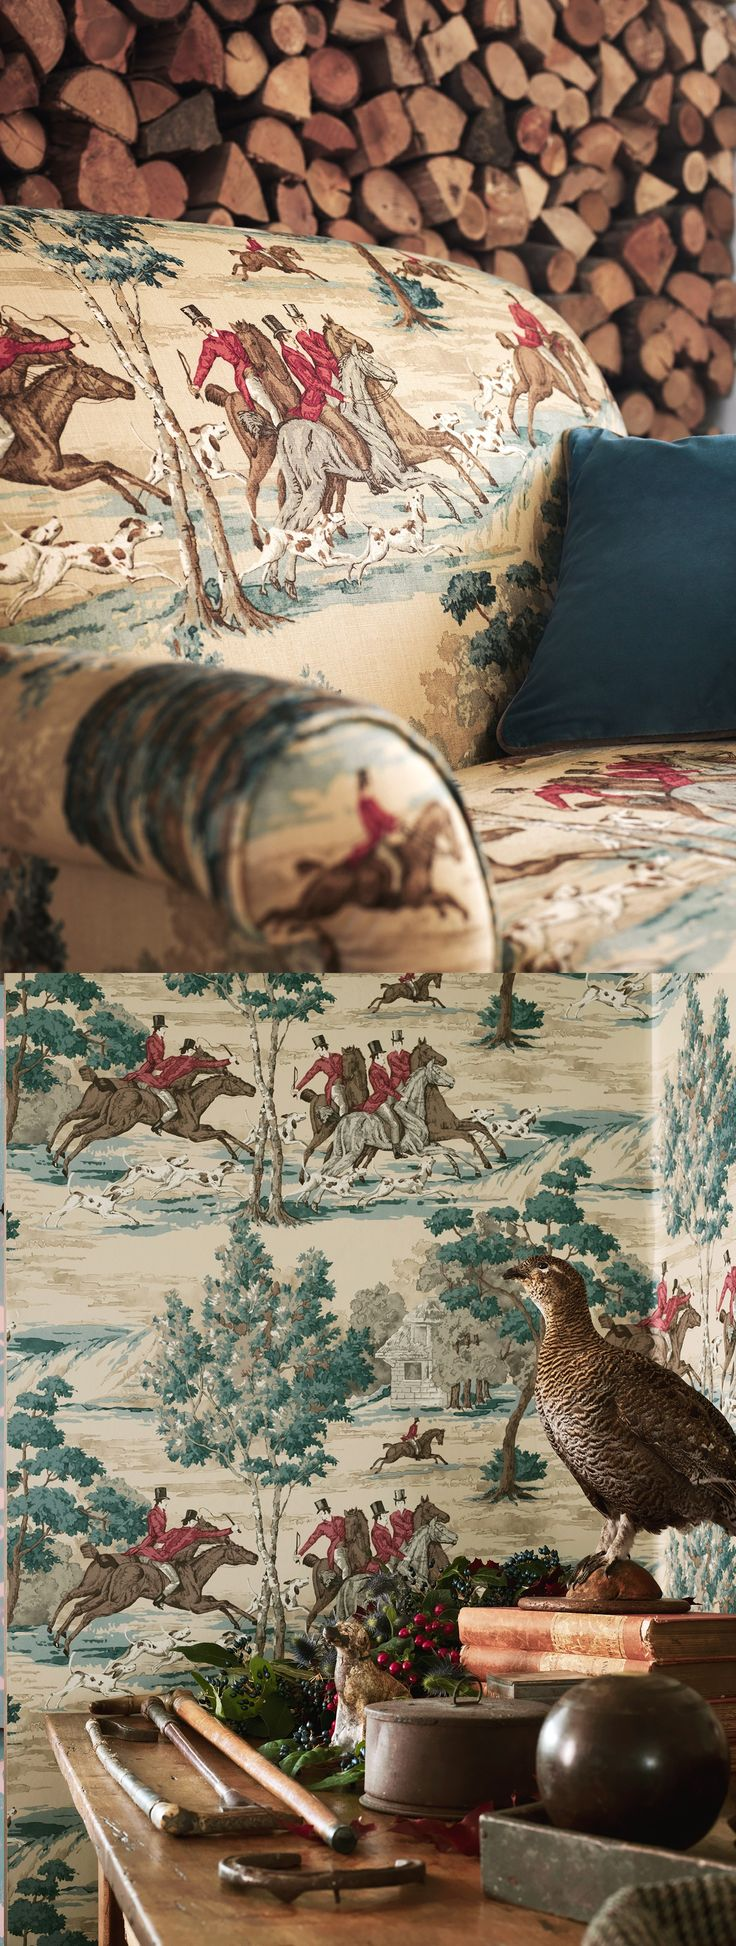 sanderson tally ho vintage wallpaper and fabric. hunt and hound scene...